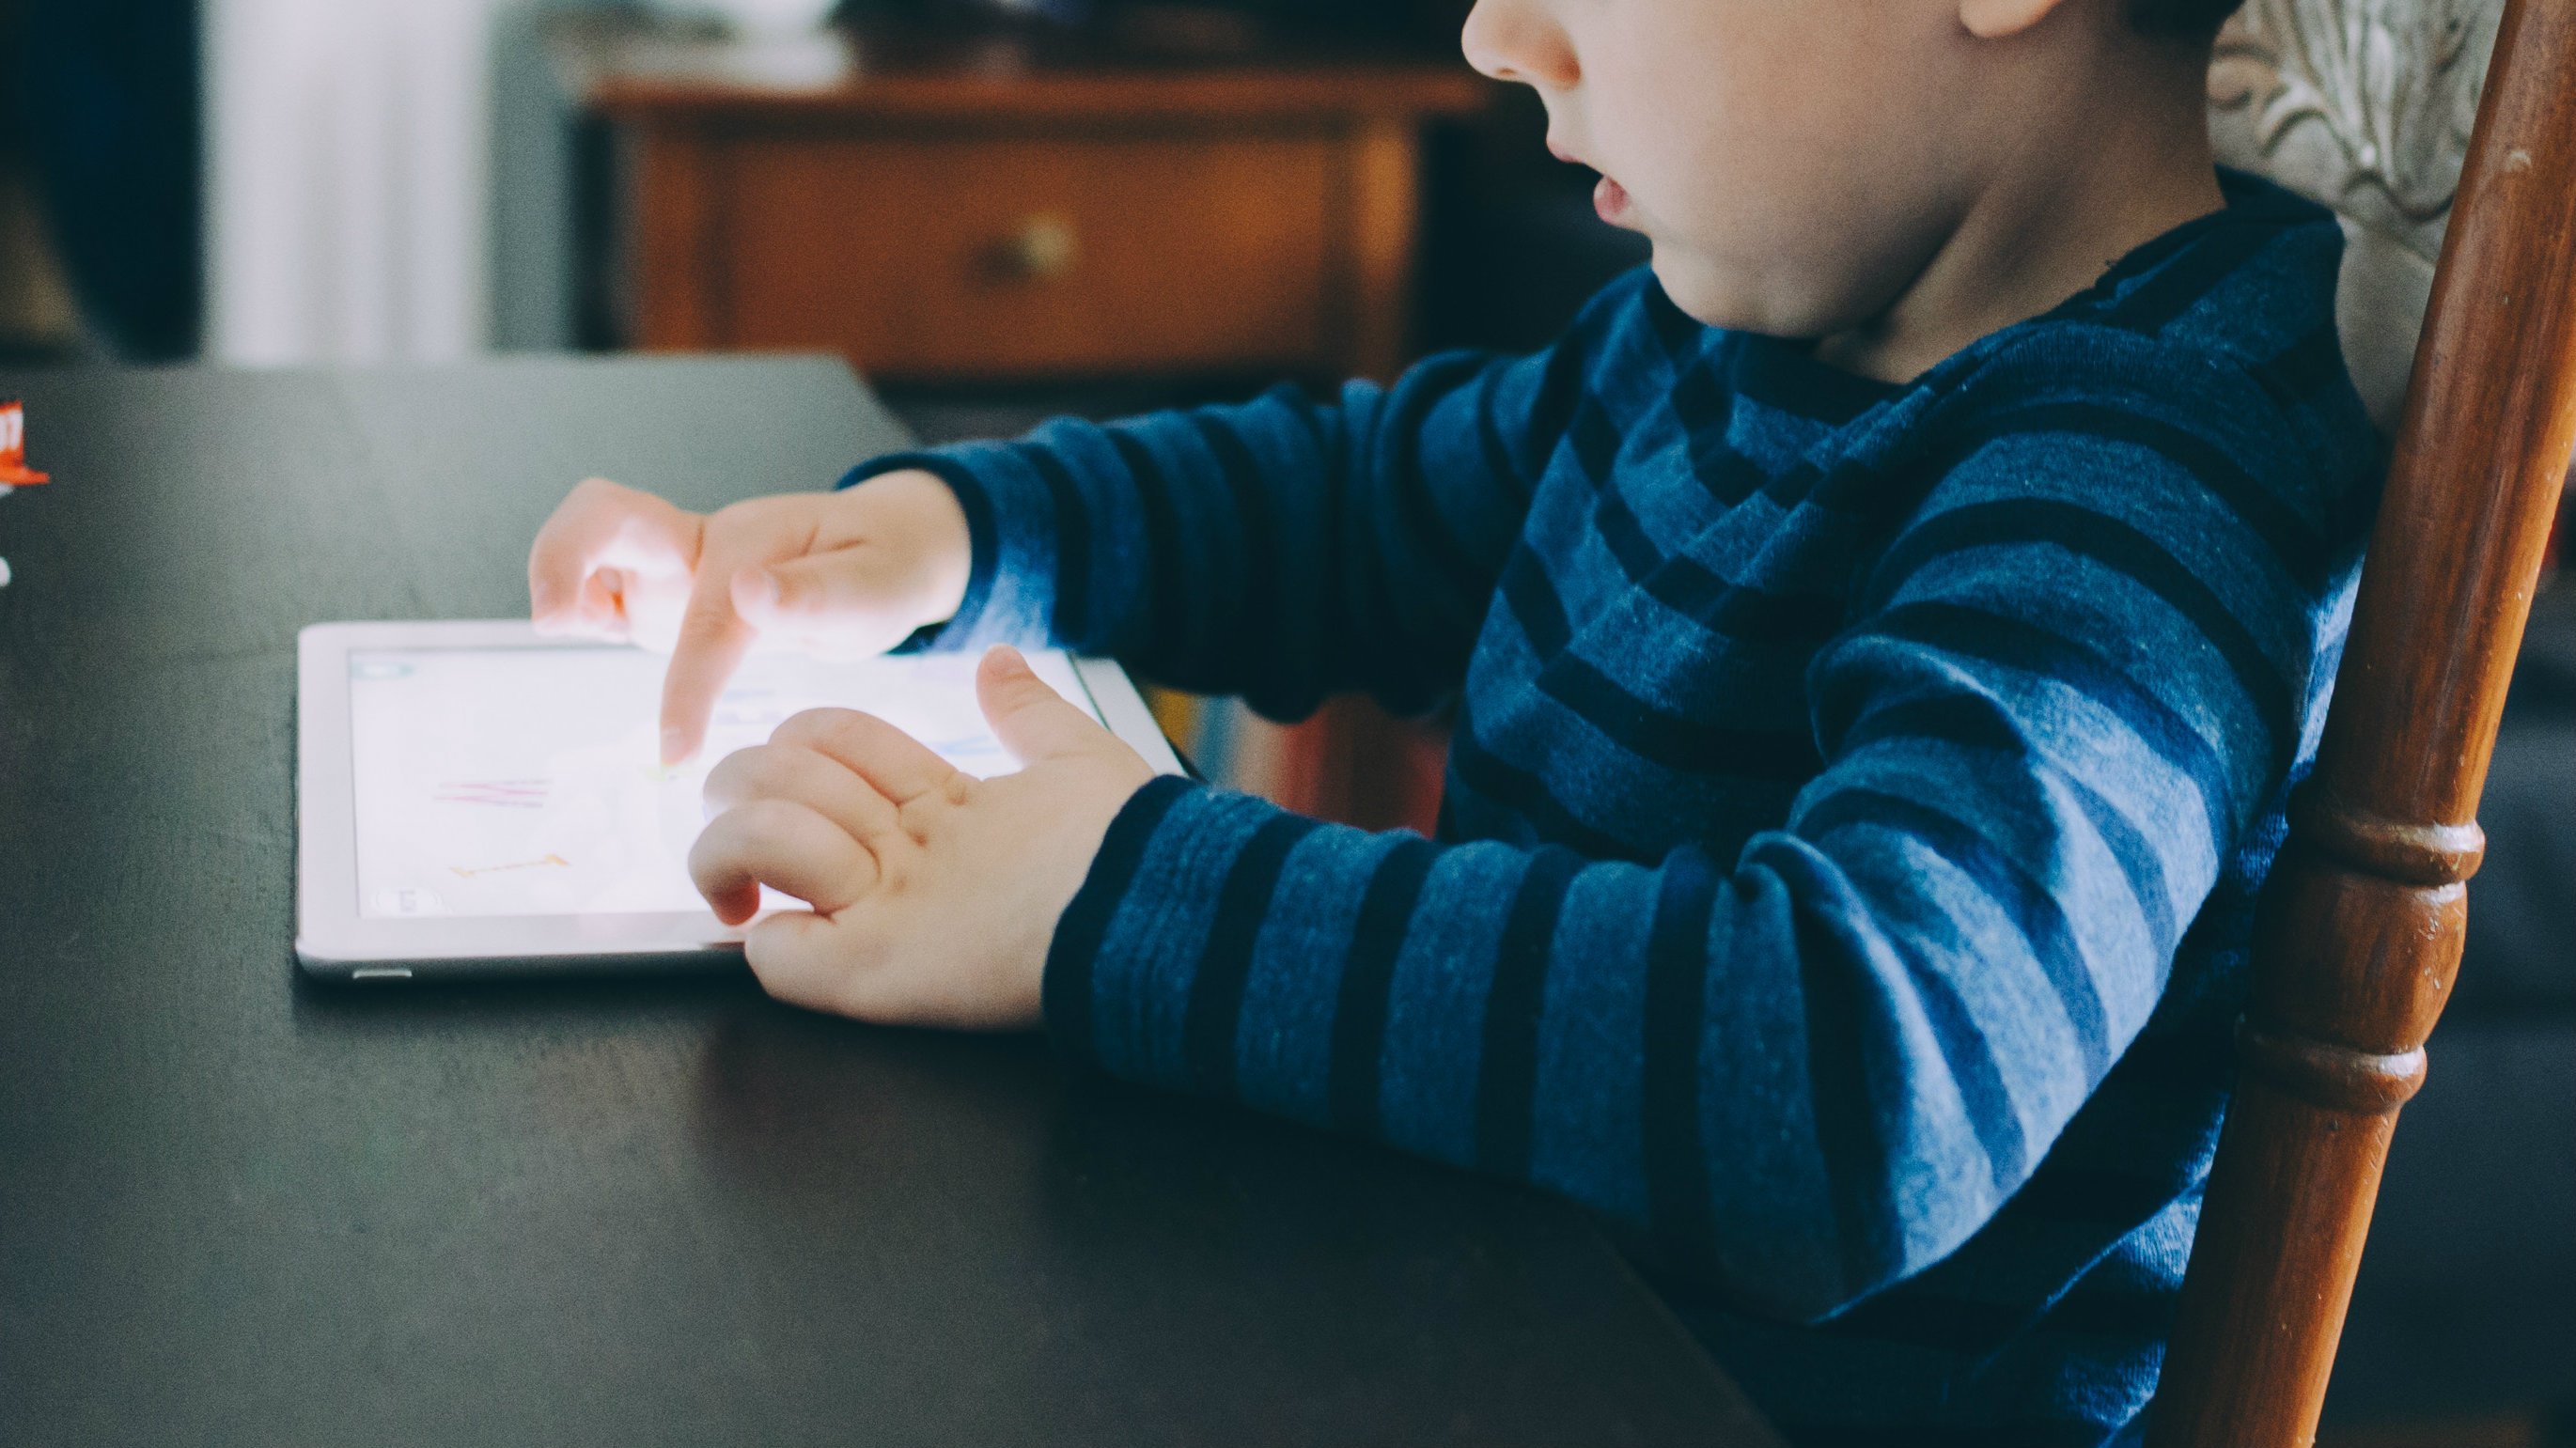 Are kids actually addicted to technology? — Quartz